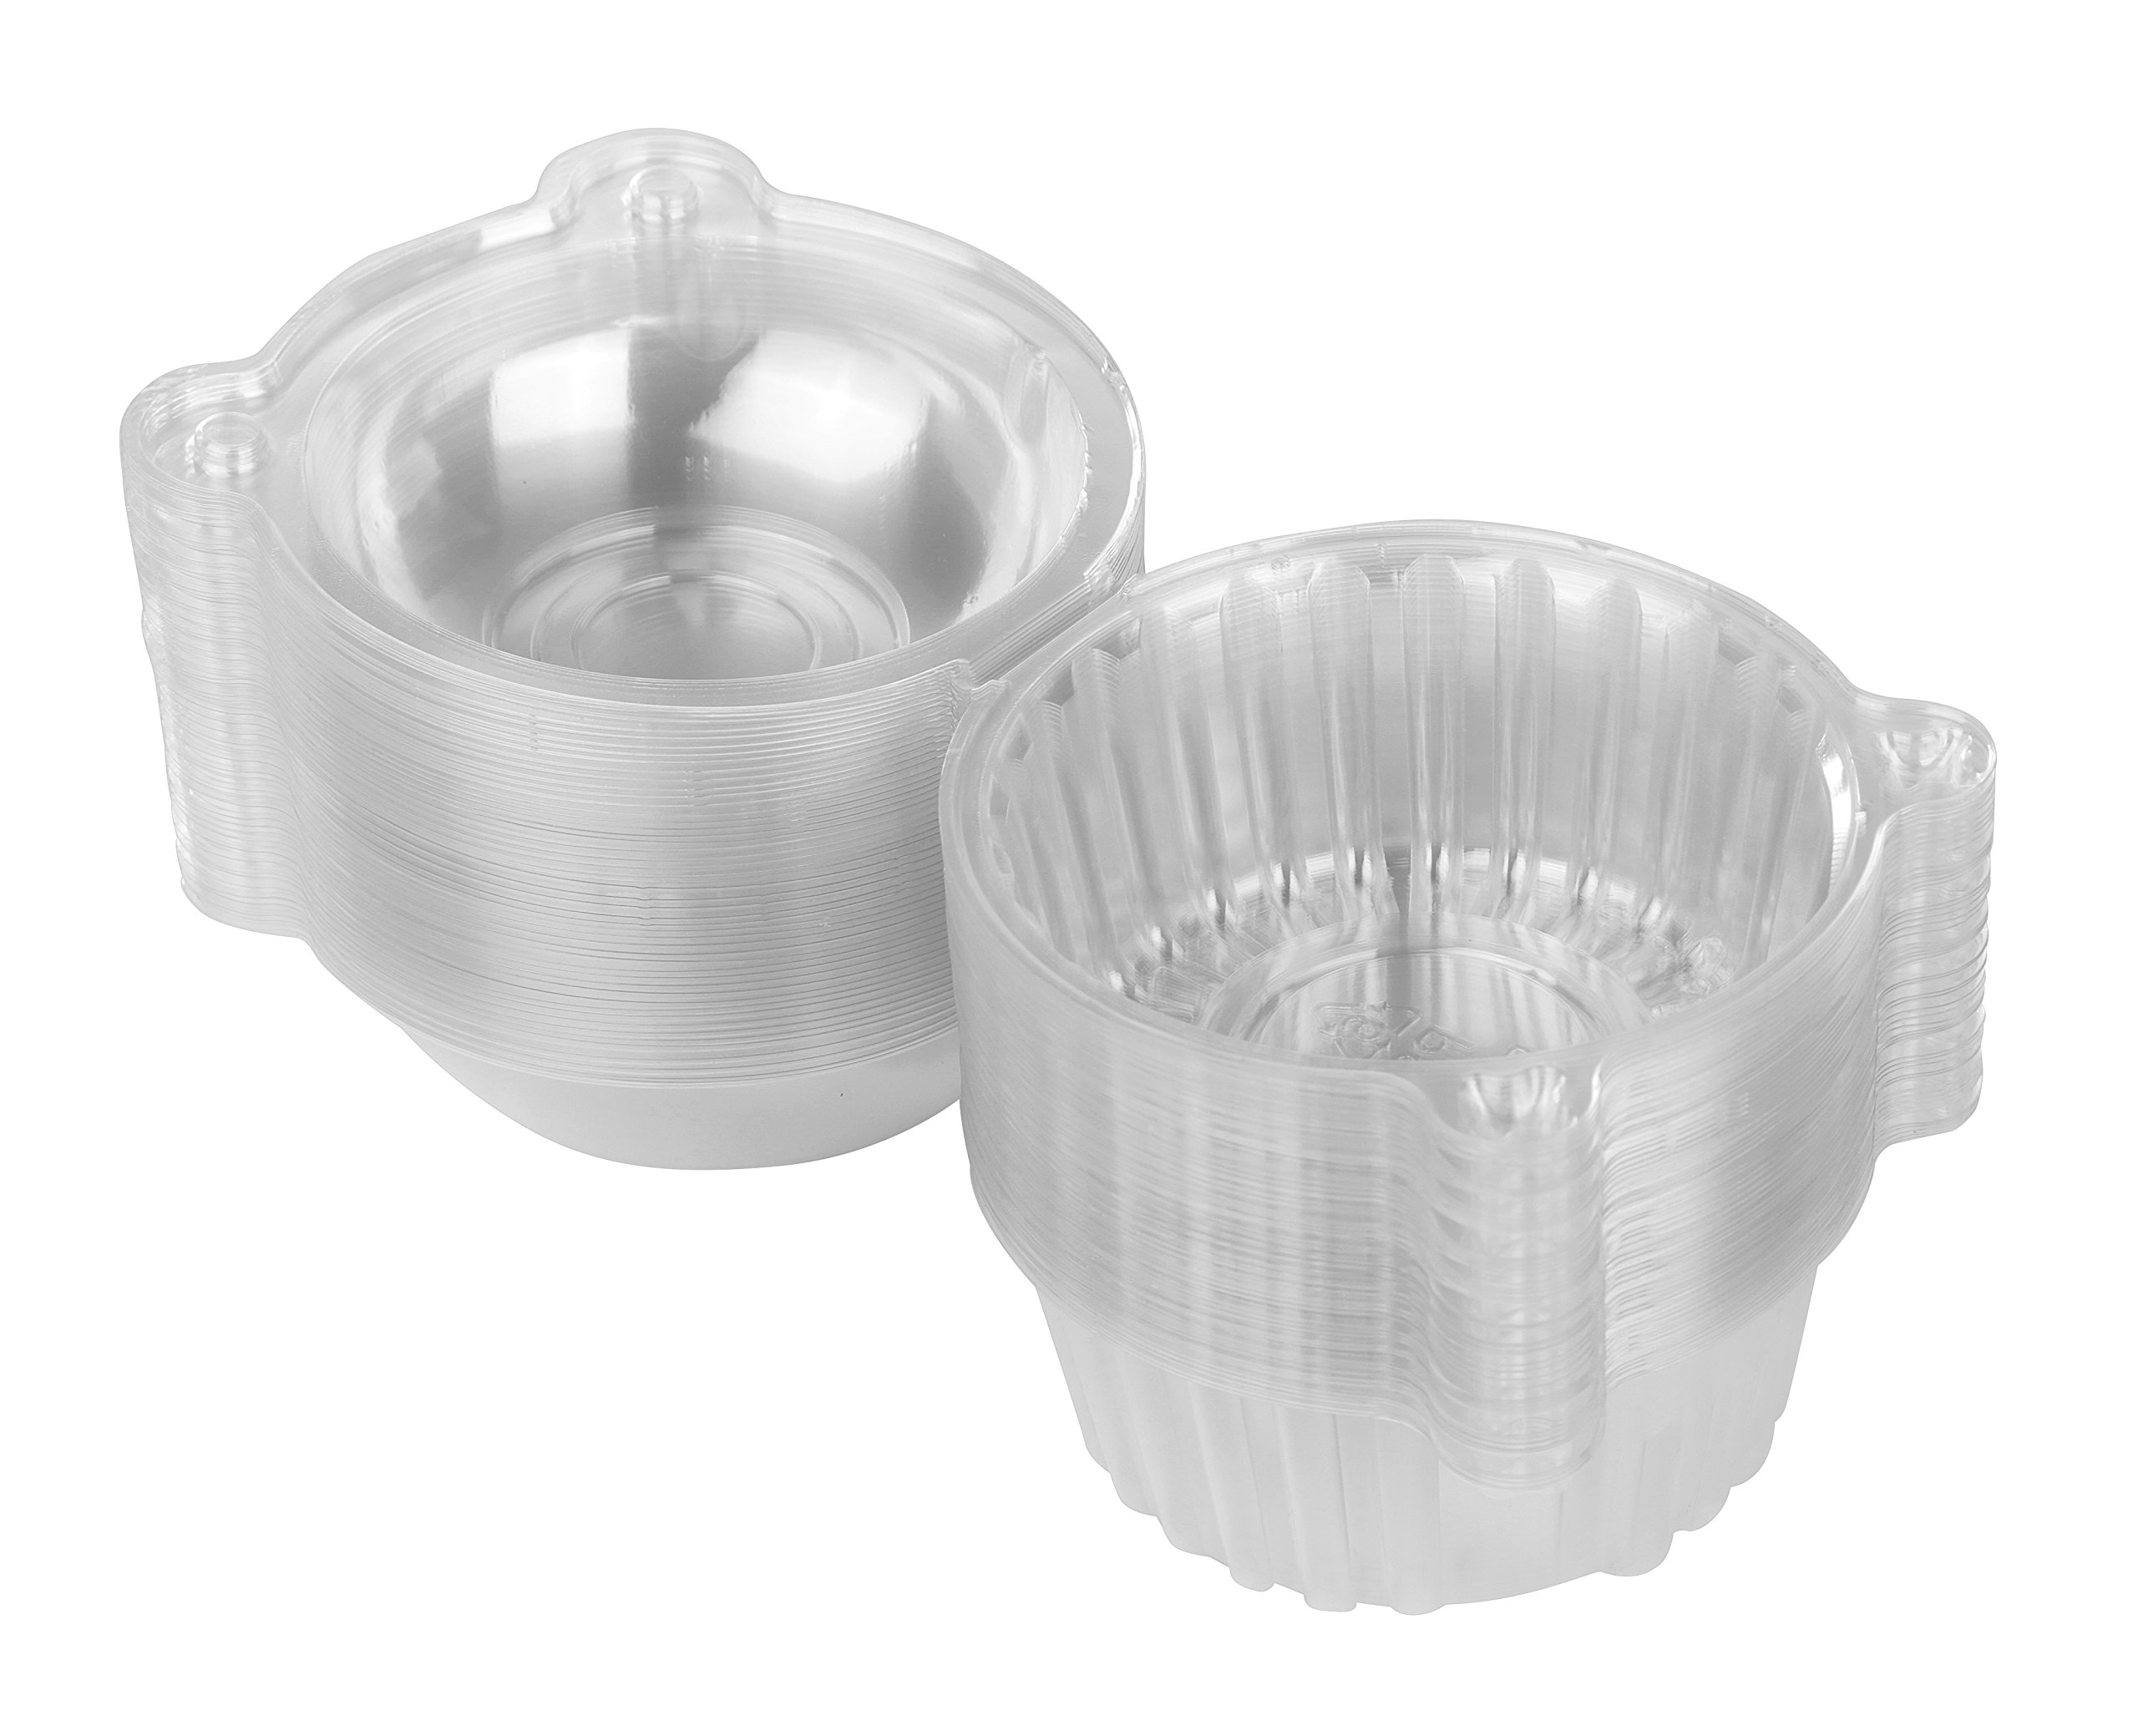 50 Single Individual Cupcake Muffin Holders Clear Plastic Cupcake Dome Holders, Cupcake Pods Carrier Case Boxes With Resealable Lids